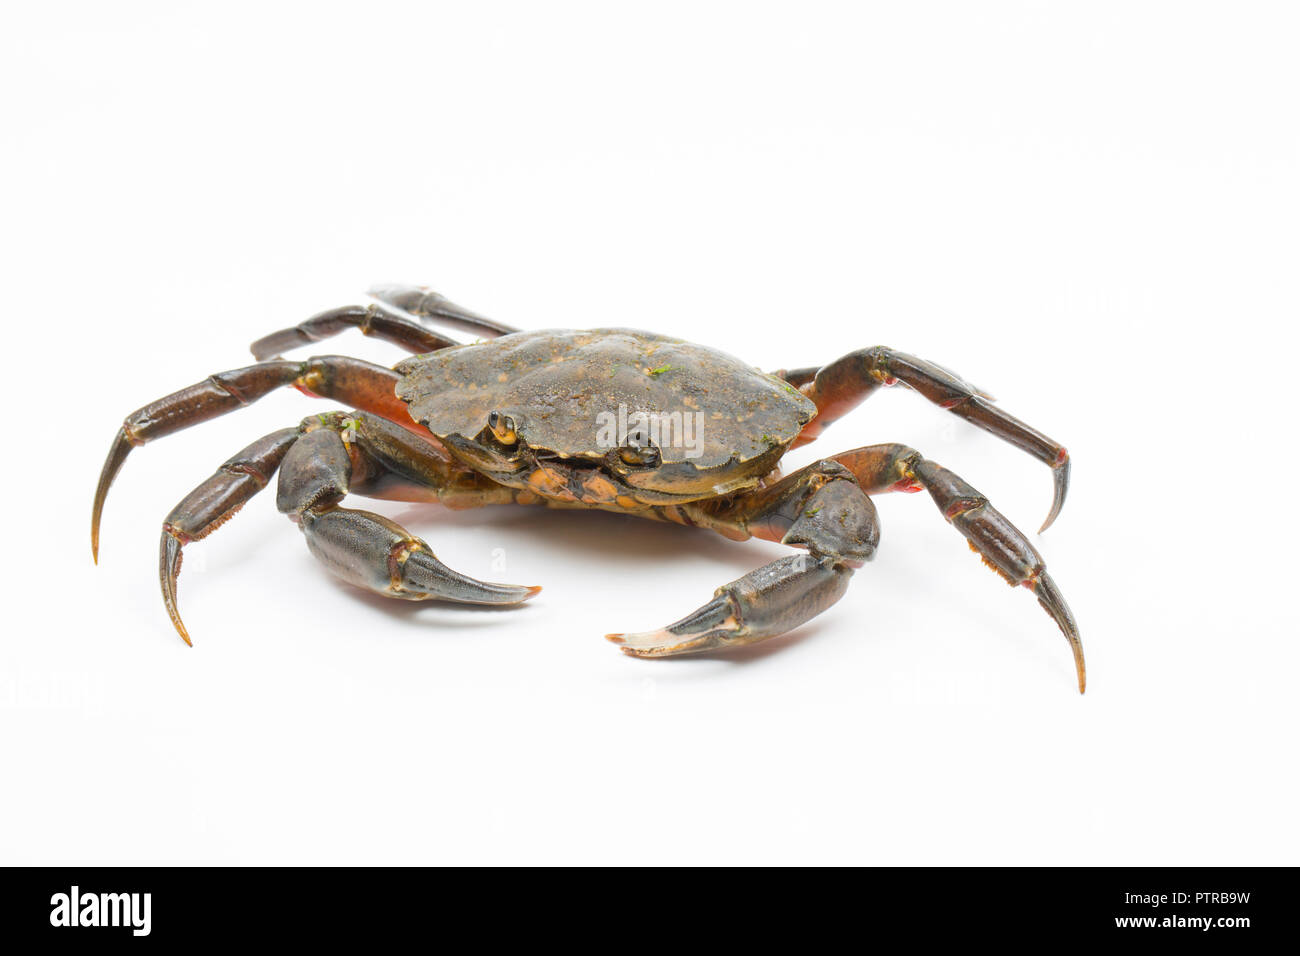 A shore crab, Carcinus maenas, also known as the european crab or green crab, photographed on a white background before release. Dorset England - Stock Image